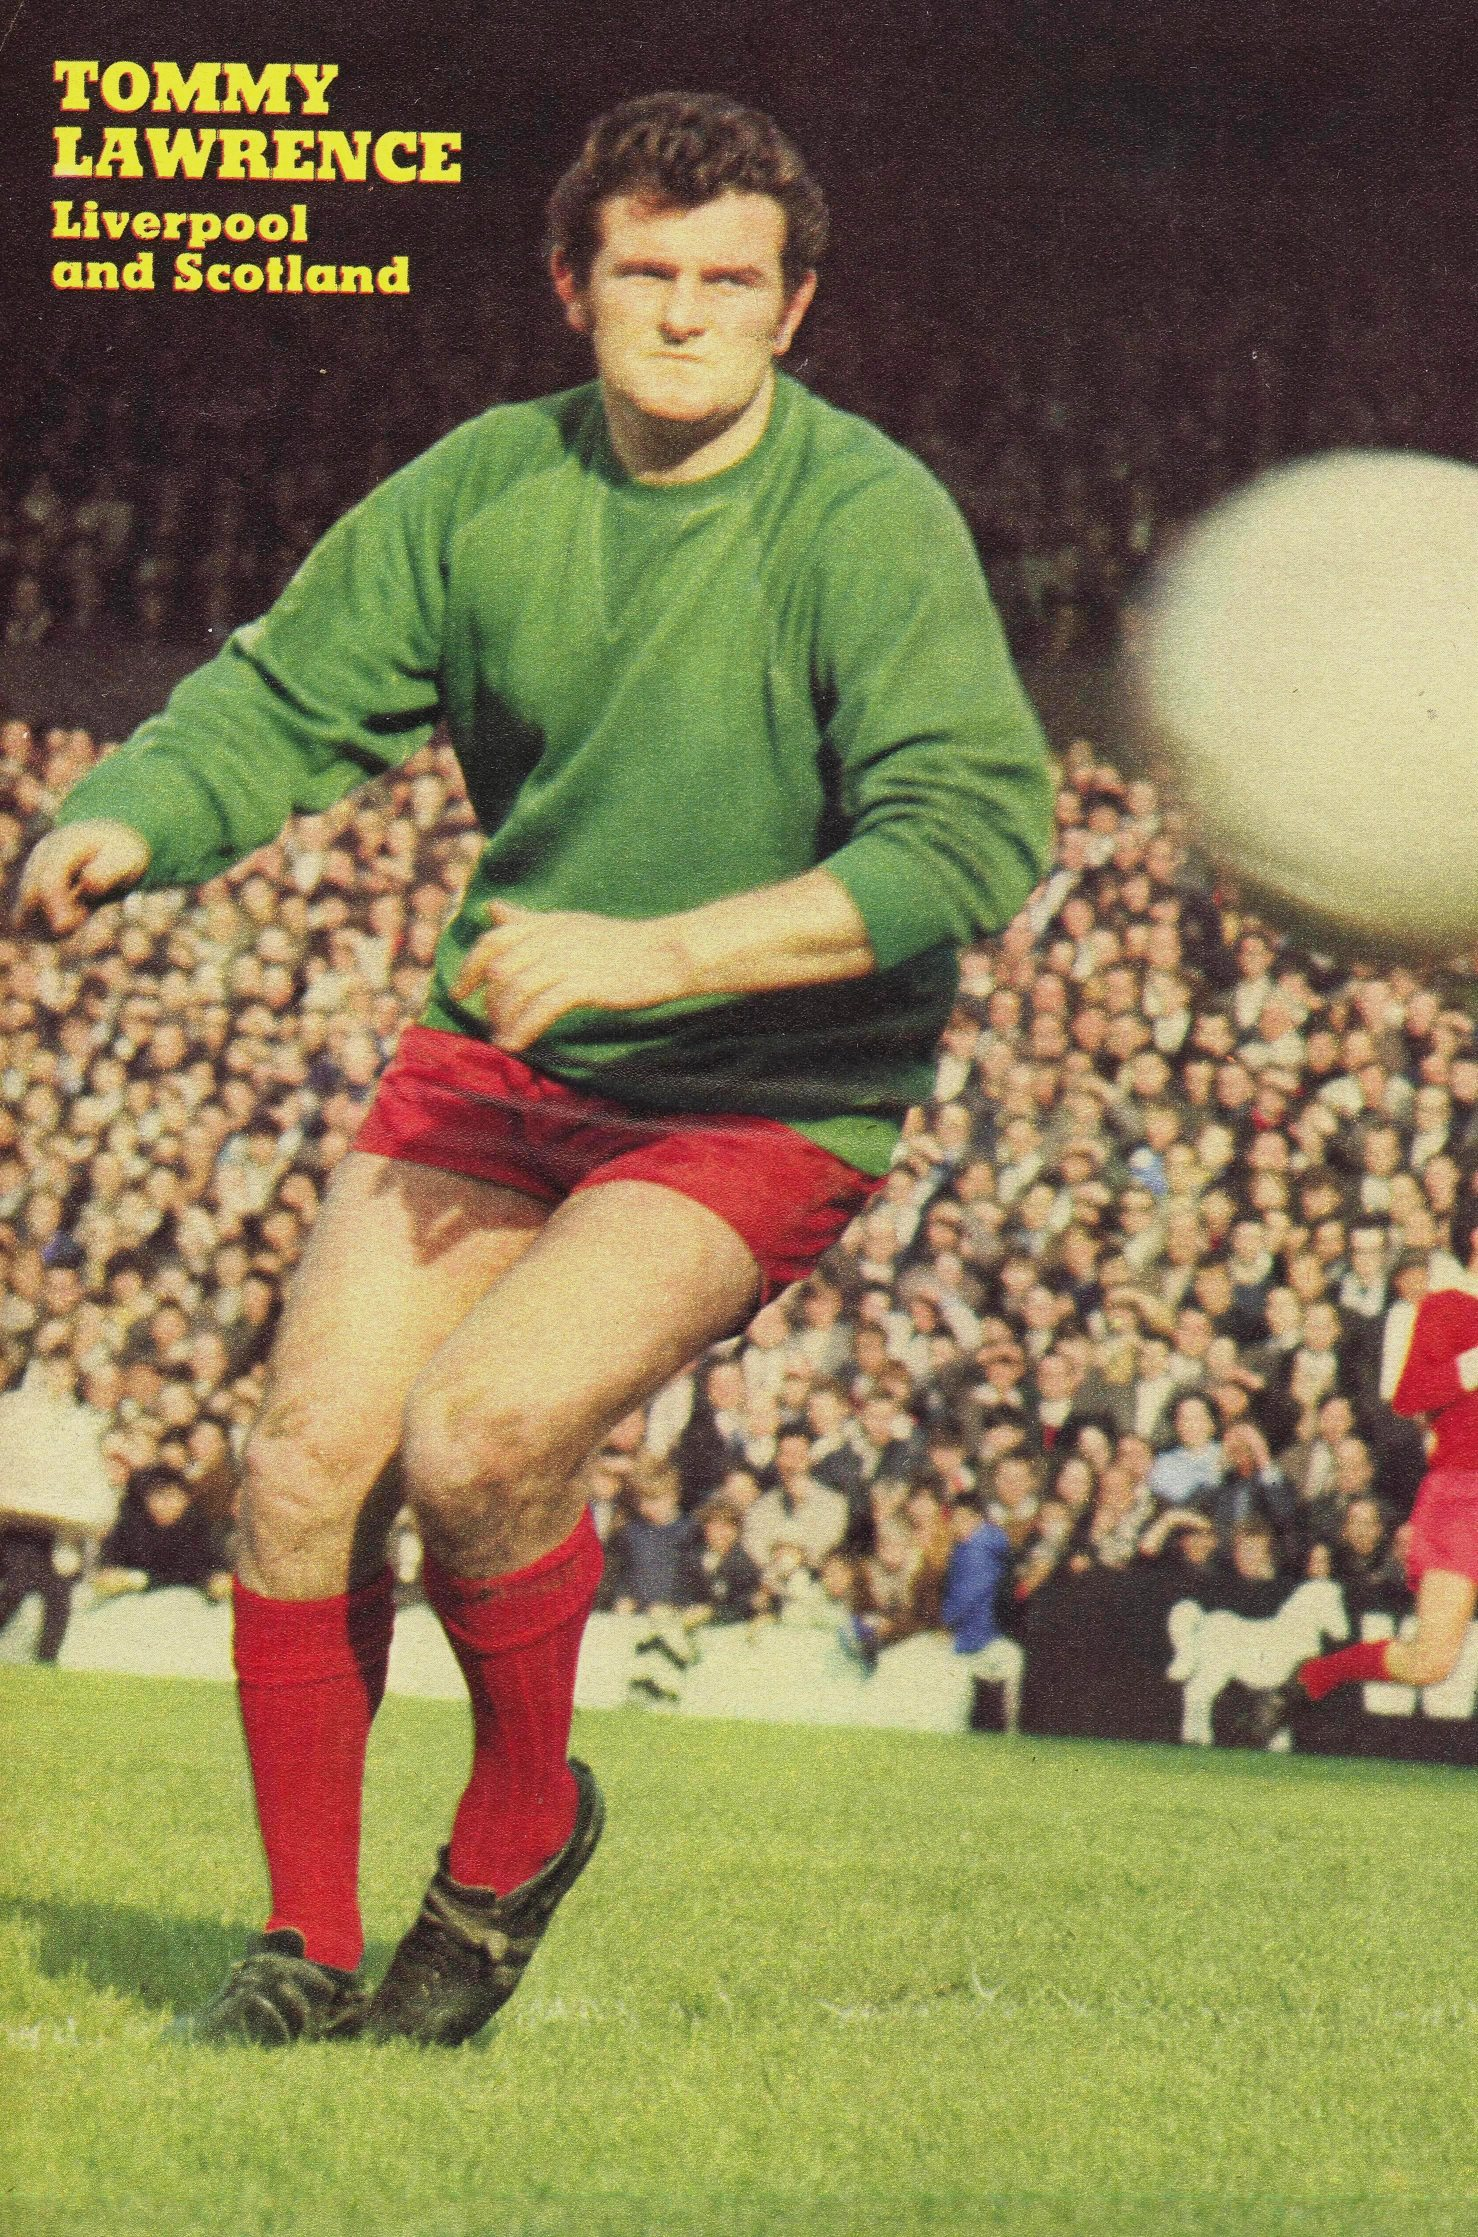 Poster of Tommy Lawrence